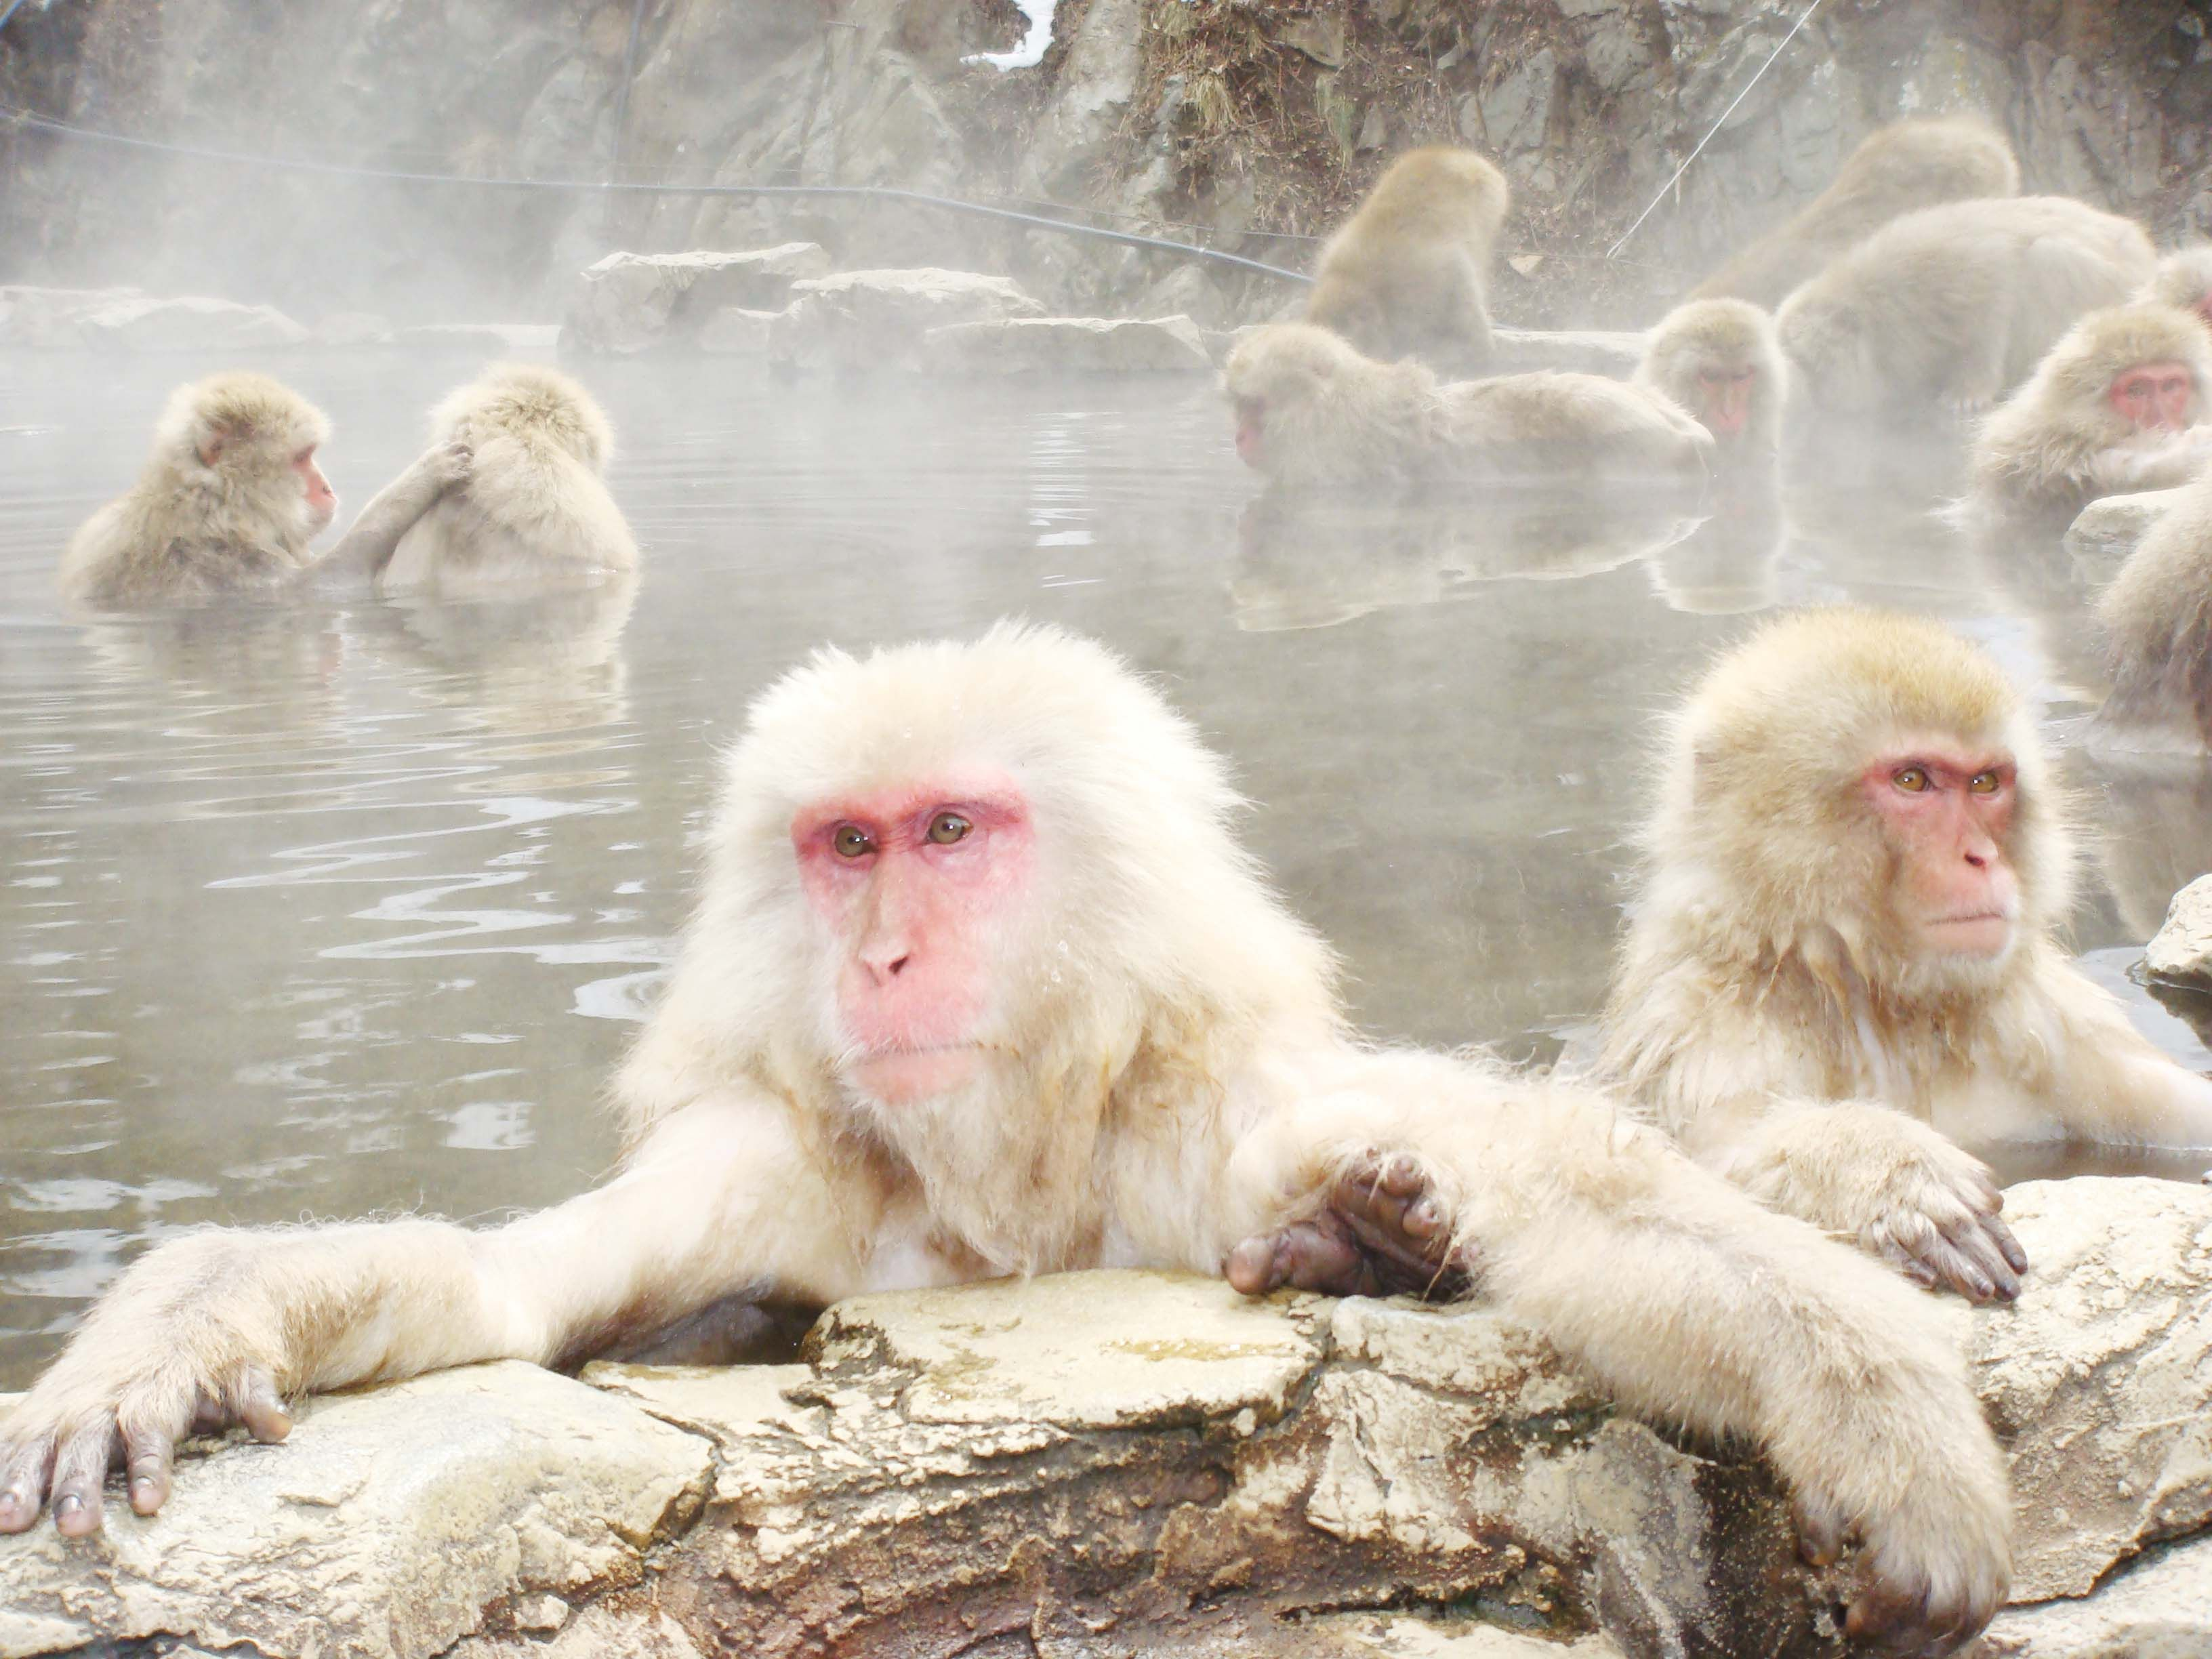 Snow monkeys enjoy the onsen at Jigokudani Monkey Park in Shiga Kogen ...